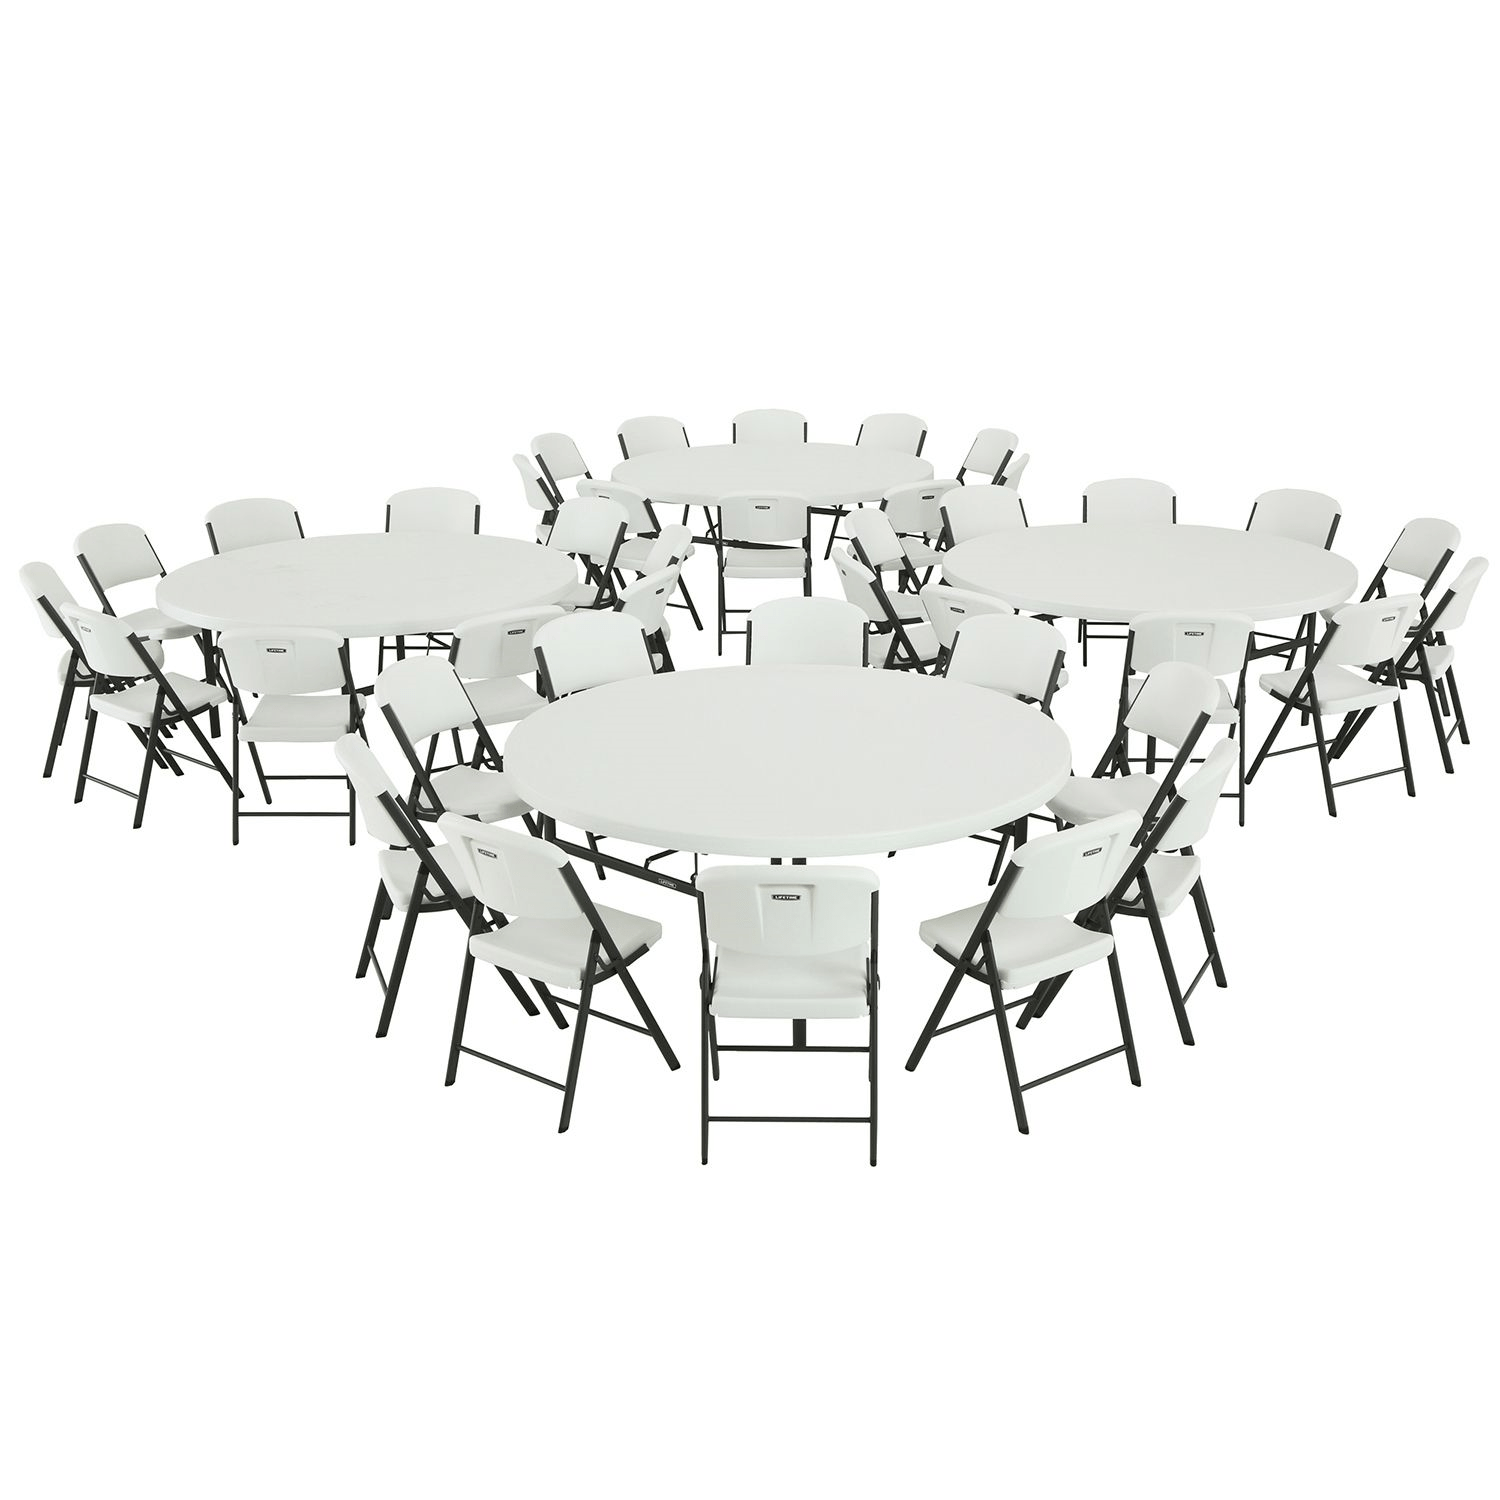 perfect table rentals design with about san wonderful remodel fancy and home in ideas diego chair interior